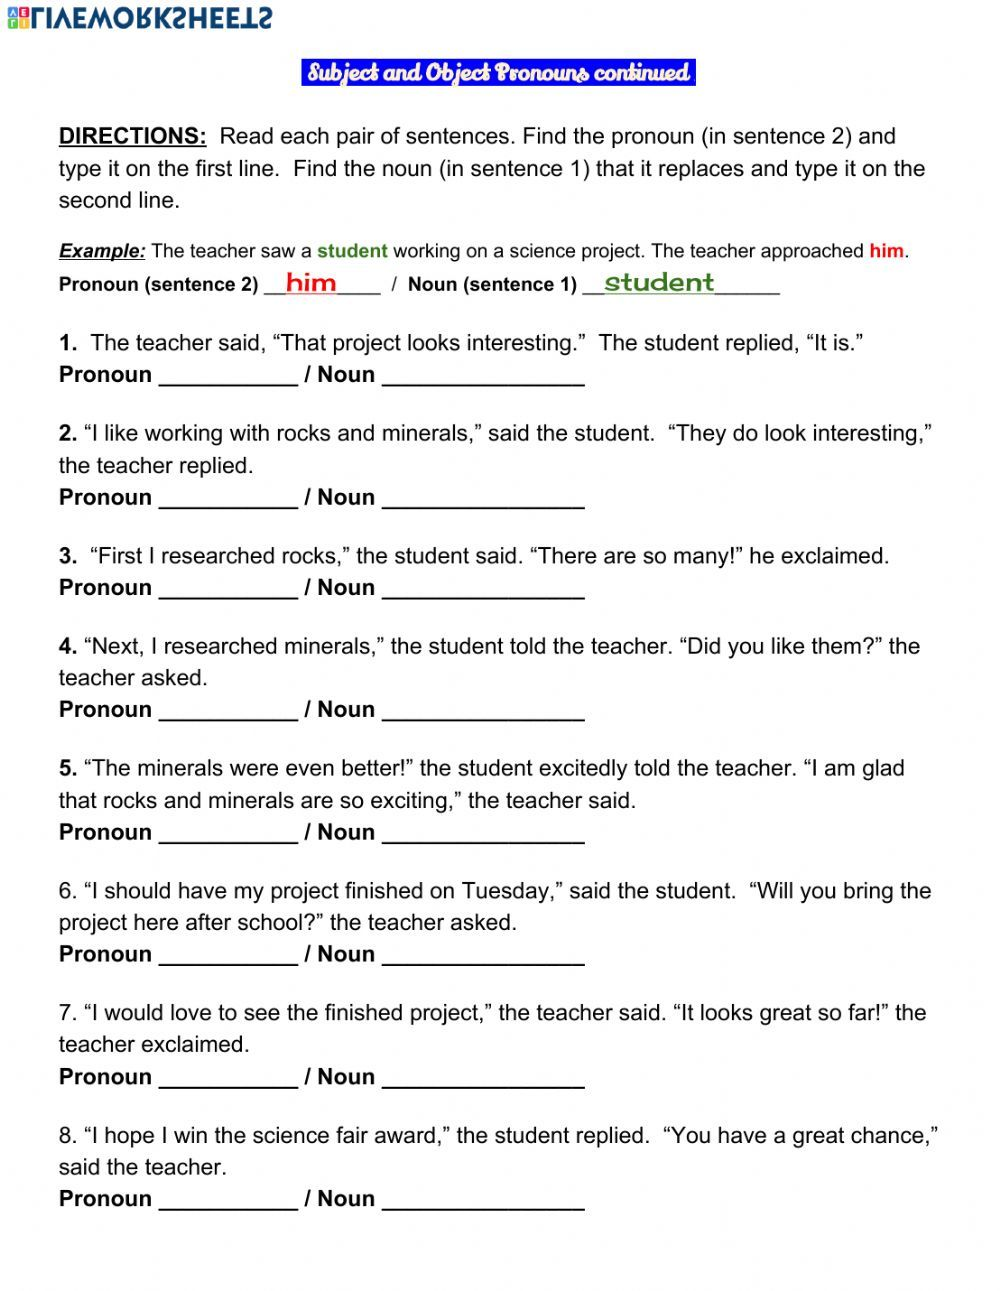 Subject And Object Pronouns Exercise In 2021 Pronouns Exercises Object Pronouns Sentence Forms